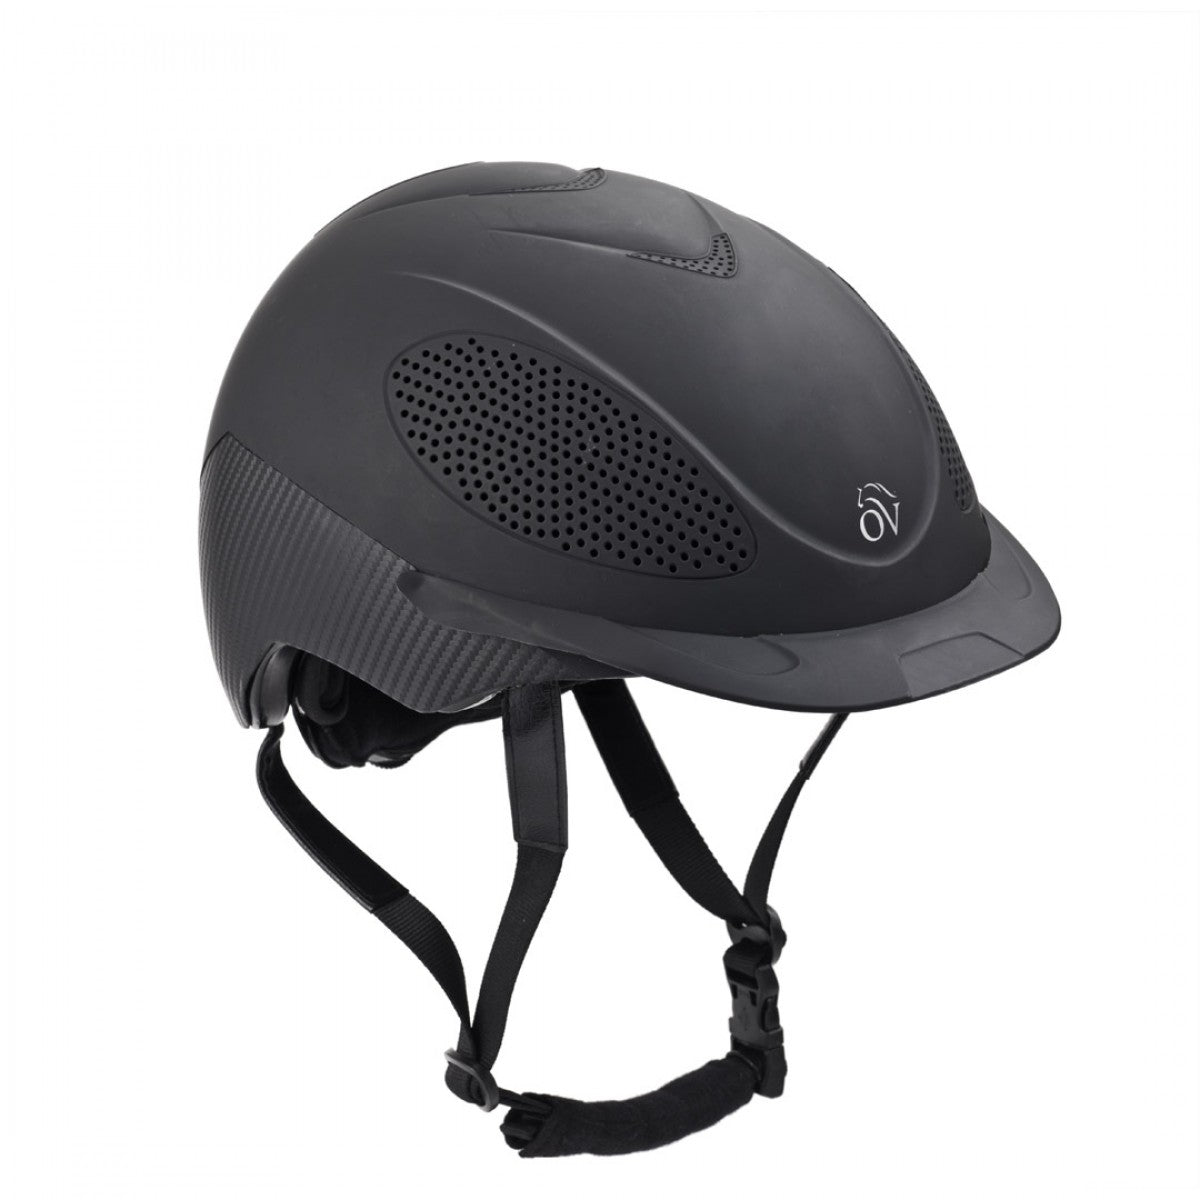 Ovation Venti Helmet - Black